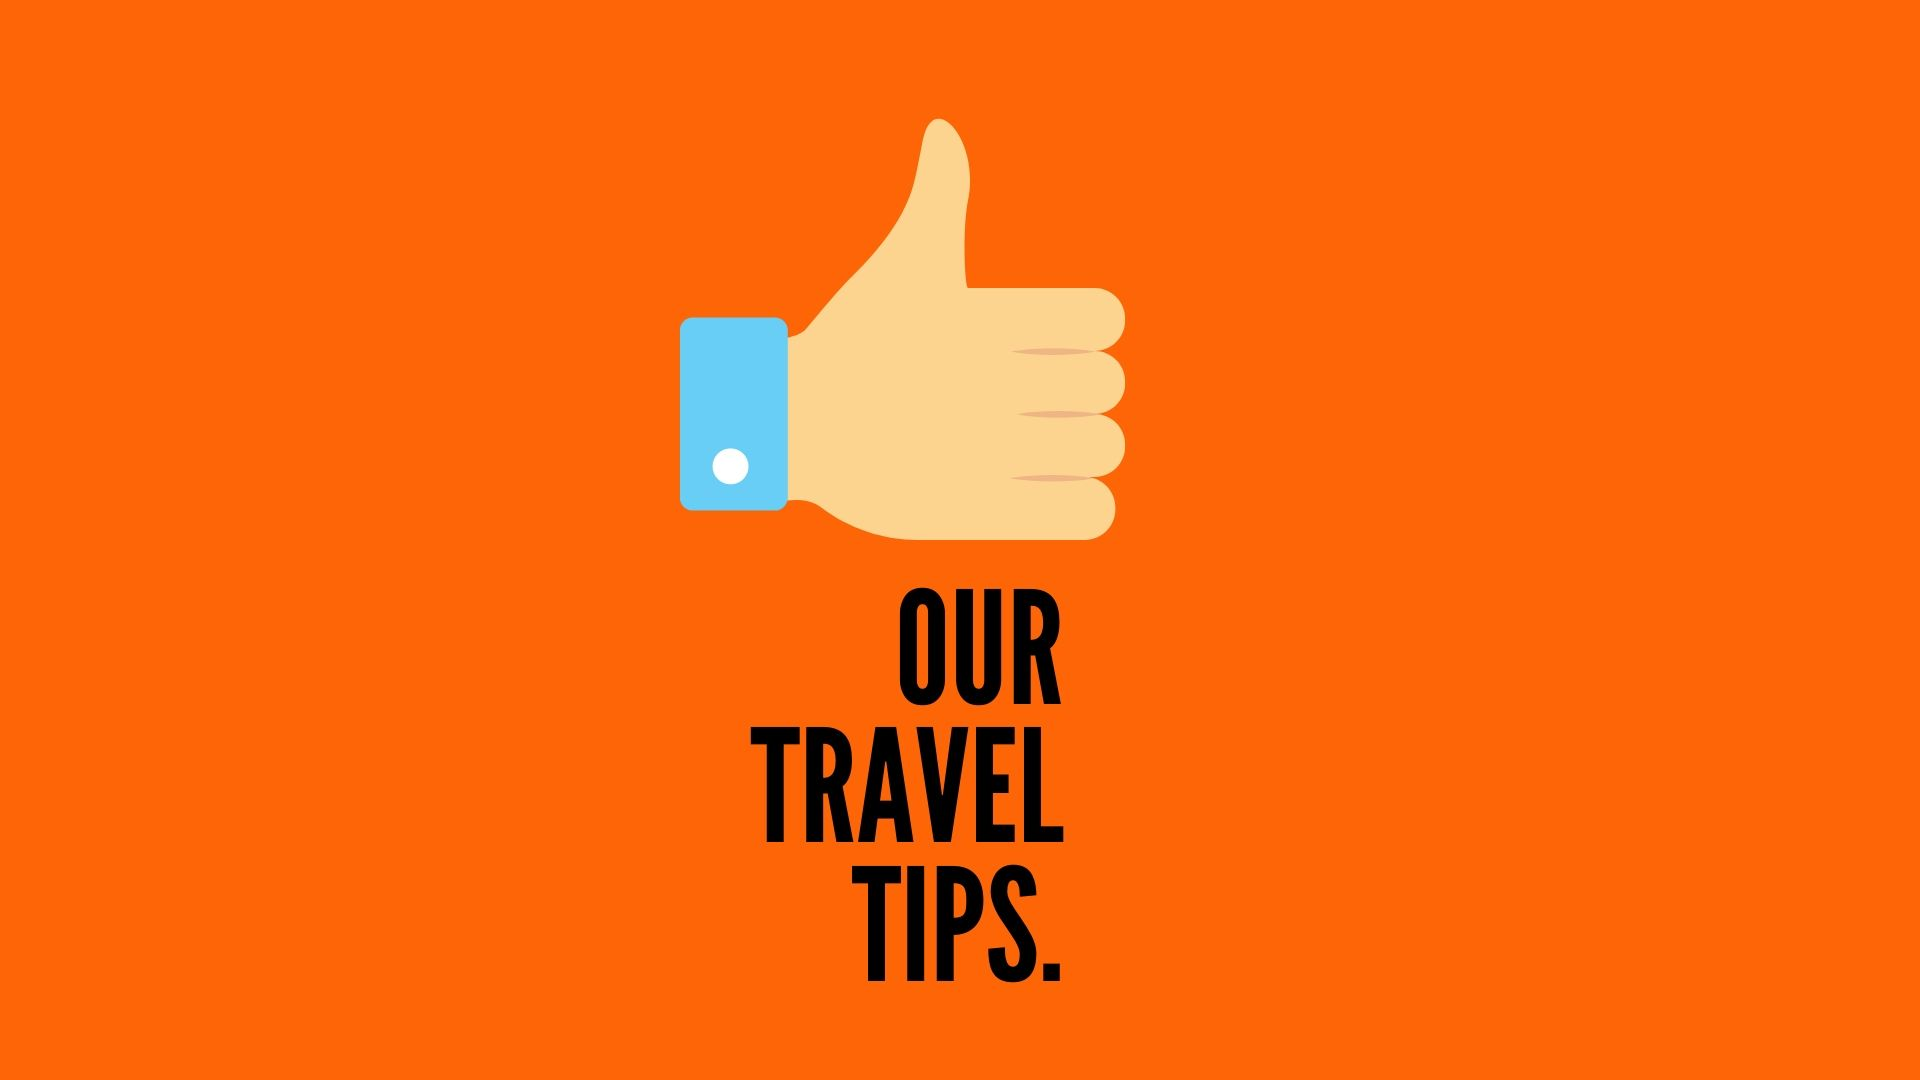 OUR TRAVEL TIPS